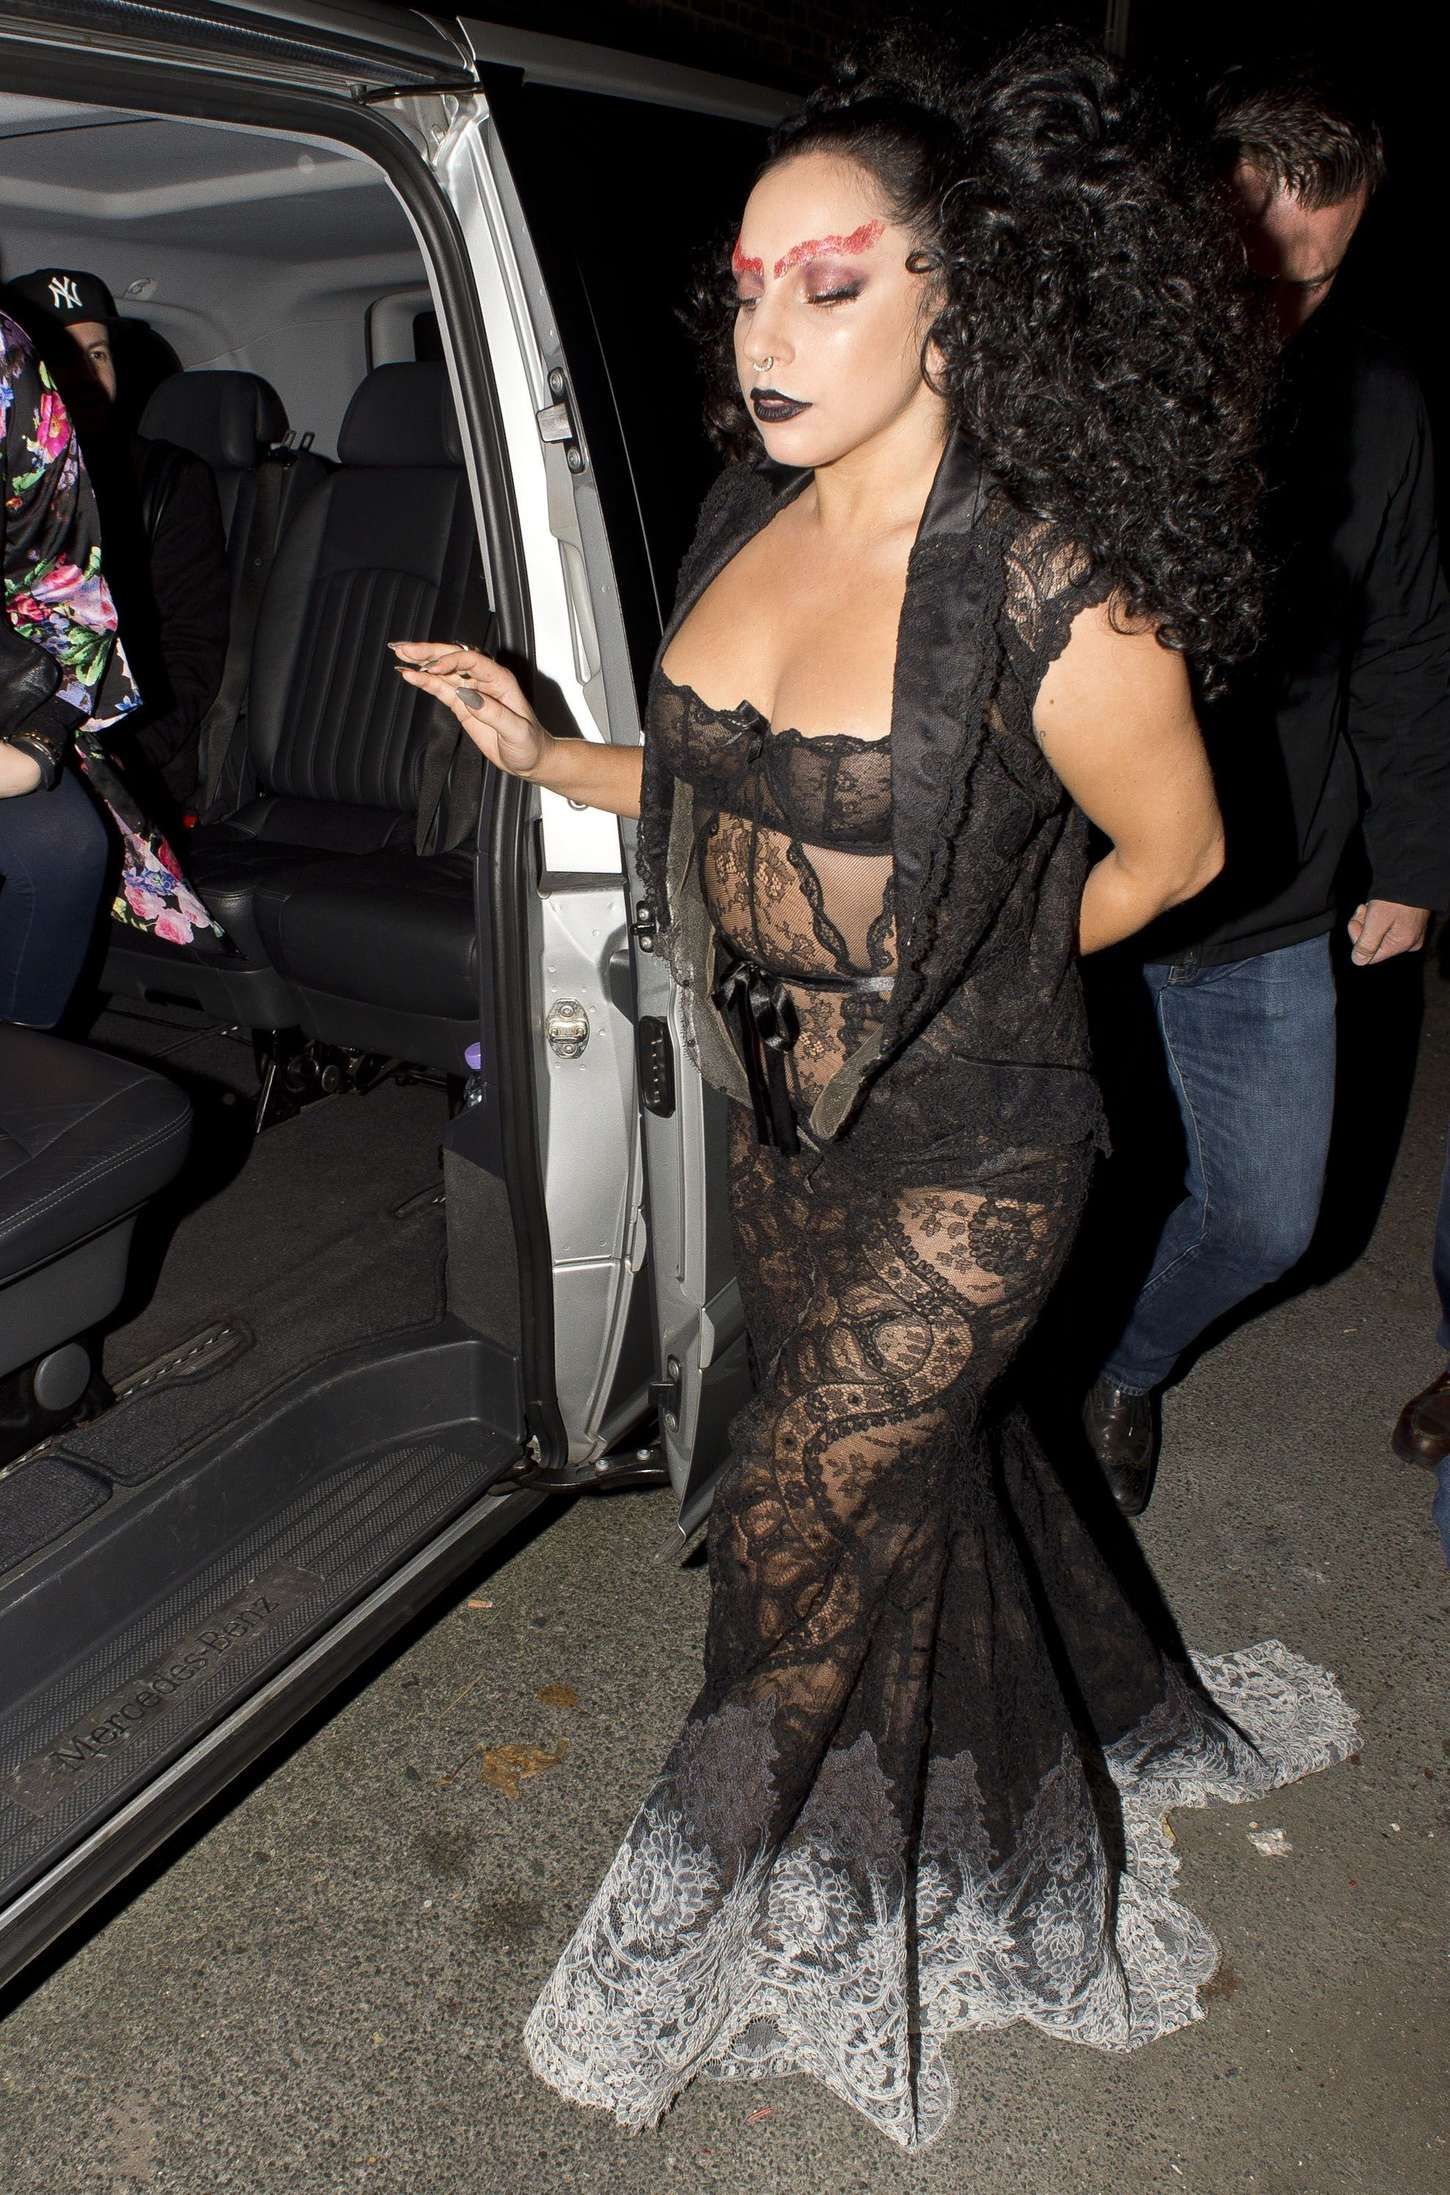 Lady-Gaga-in-Black-Dress--02.jpg